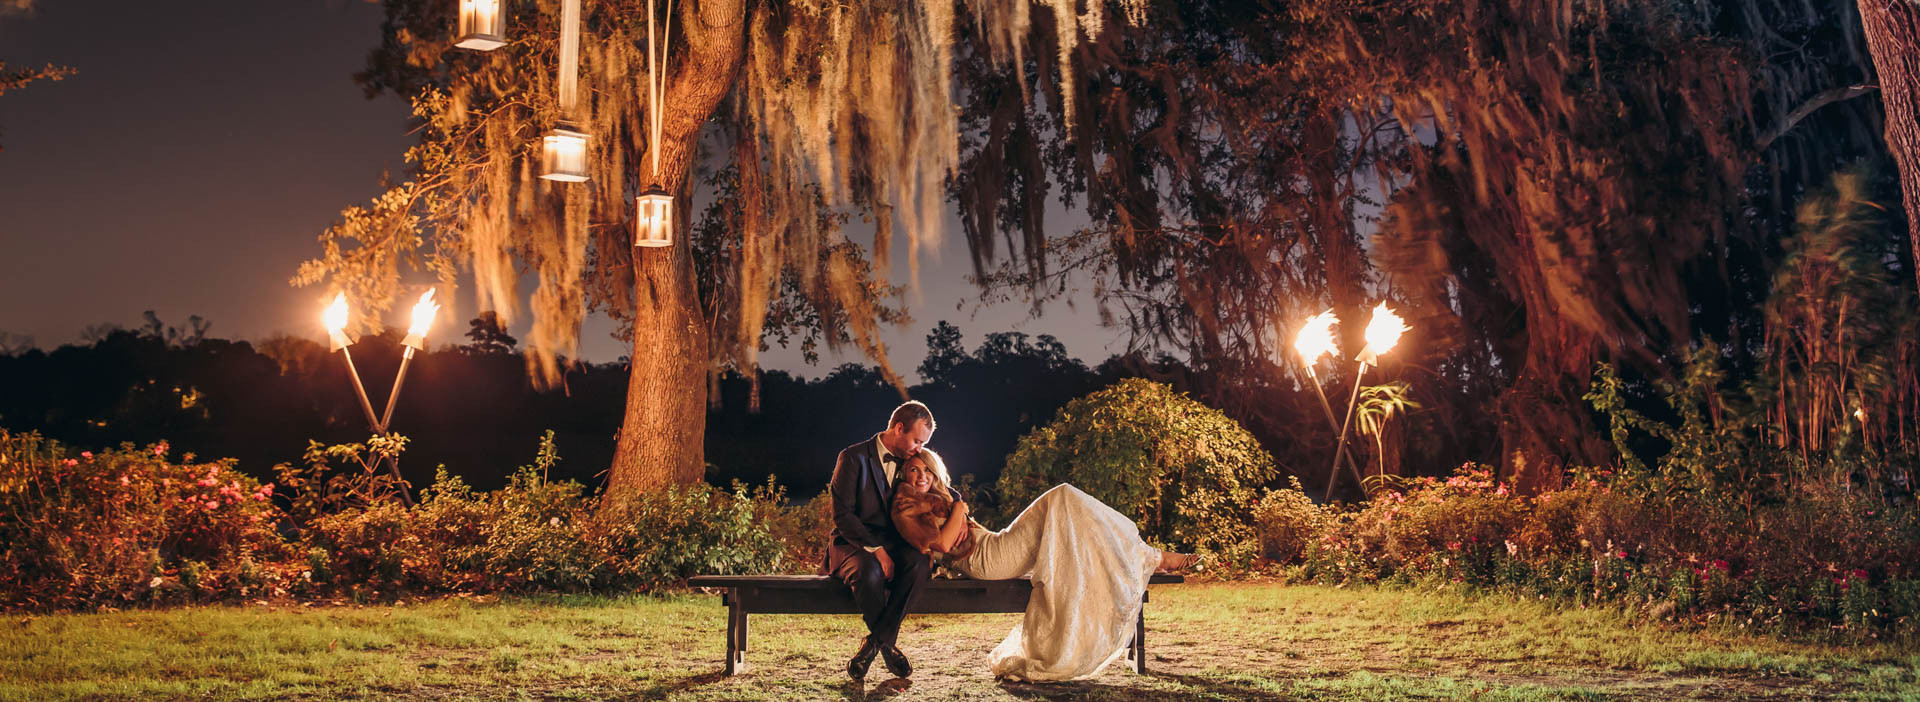 Wedding Photography Magnolia Plantation